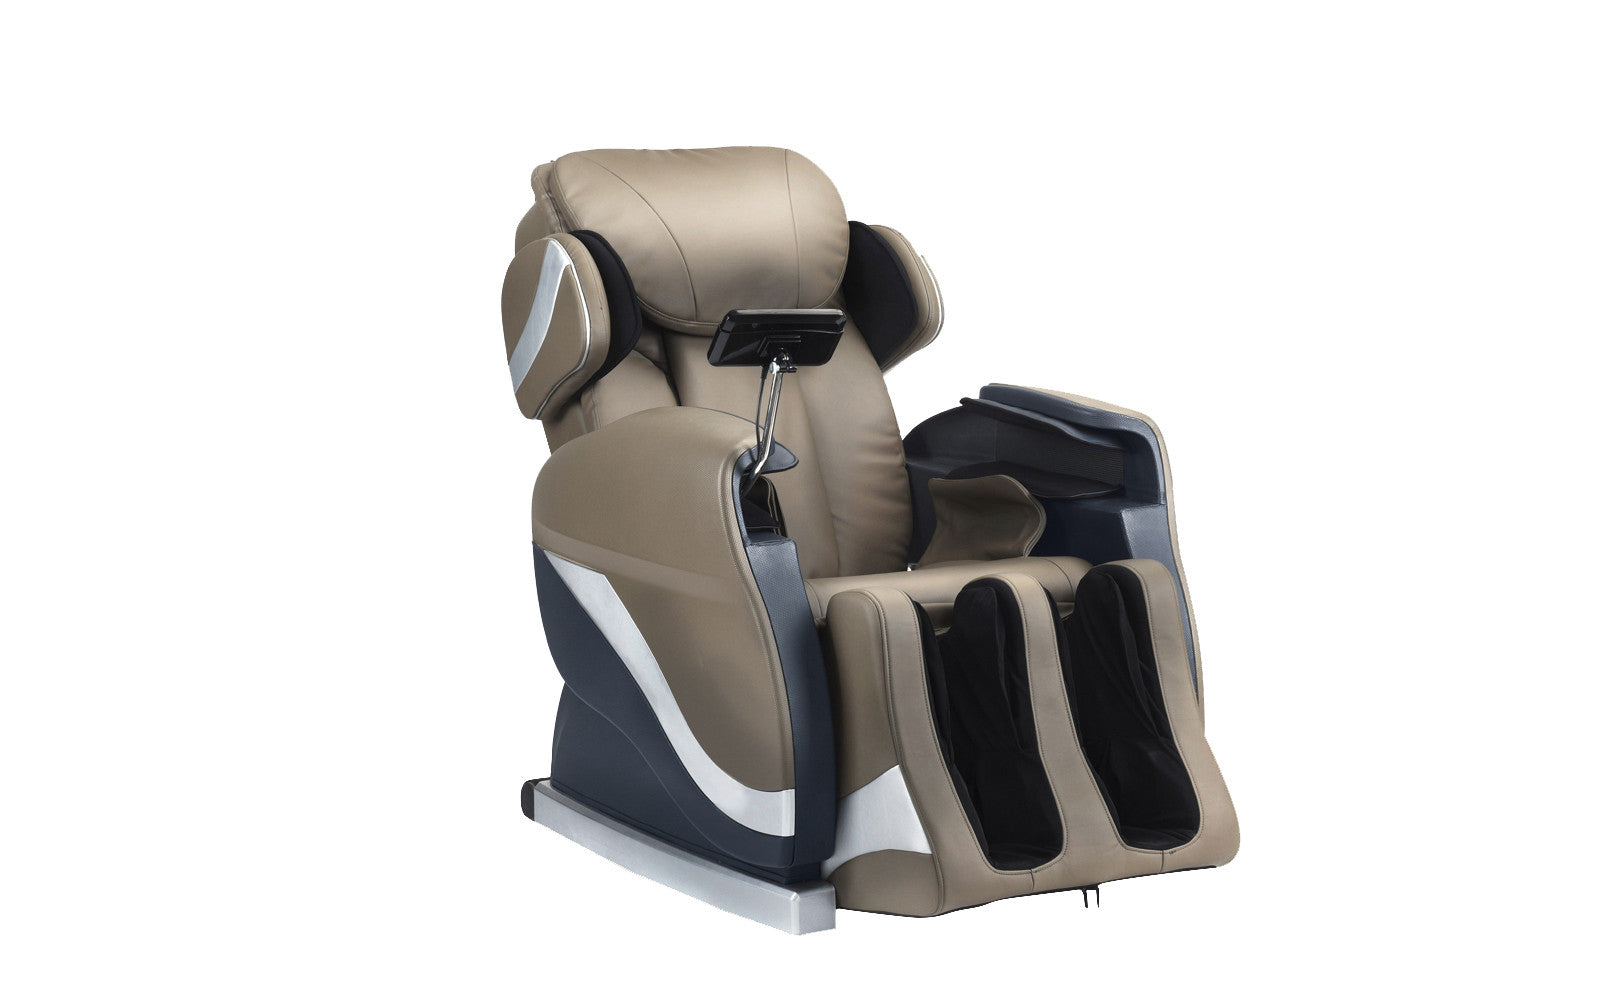 Full Body Leather Massage Recliner Image